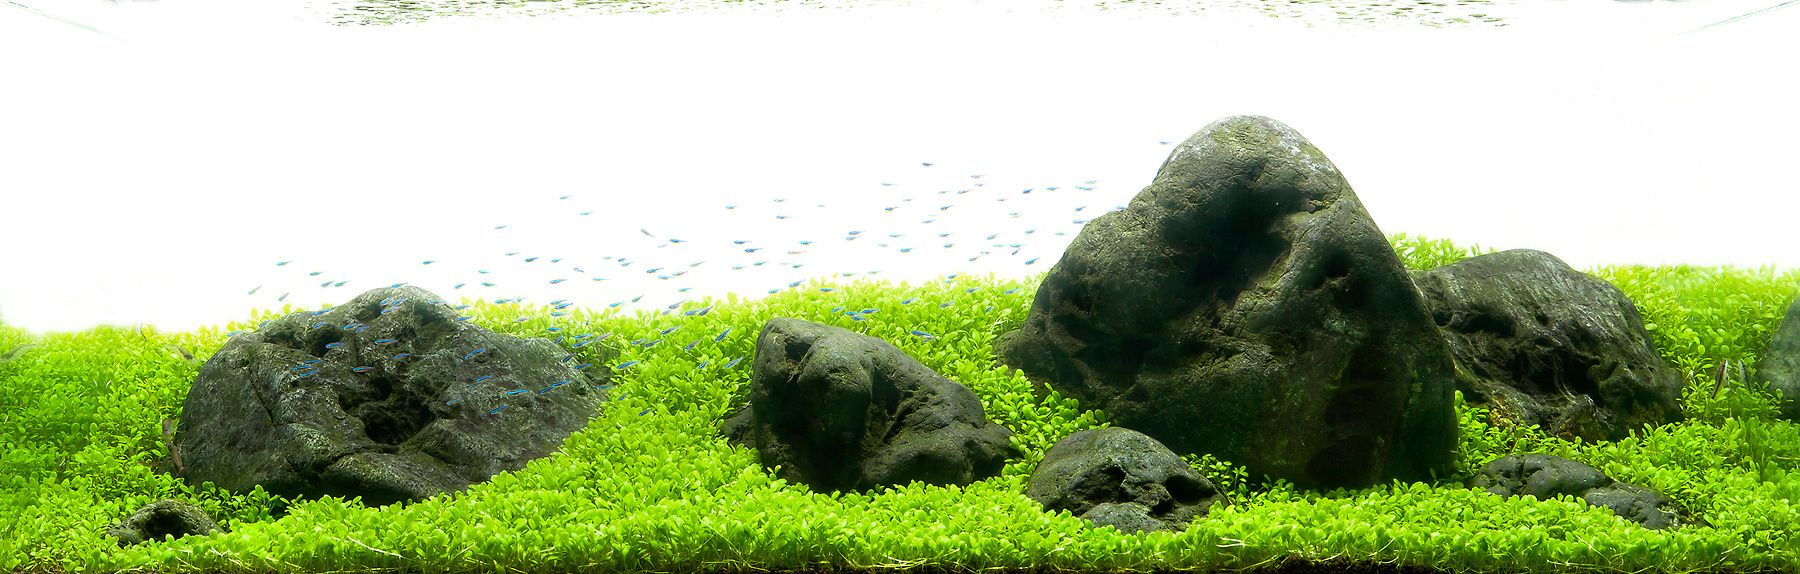 An Aquascape using Hakkai Stones